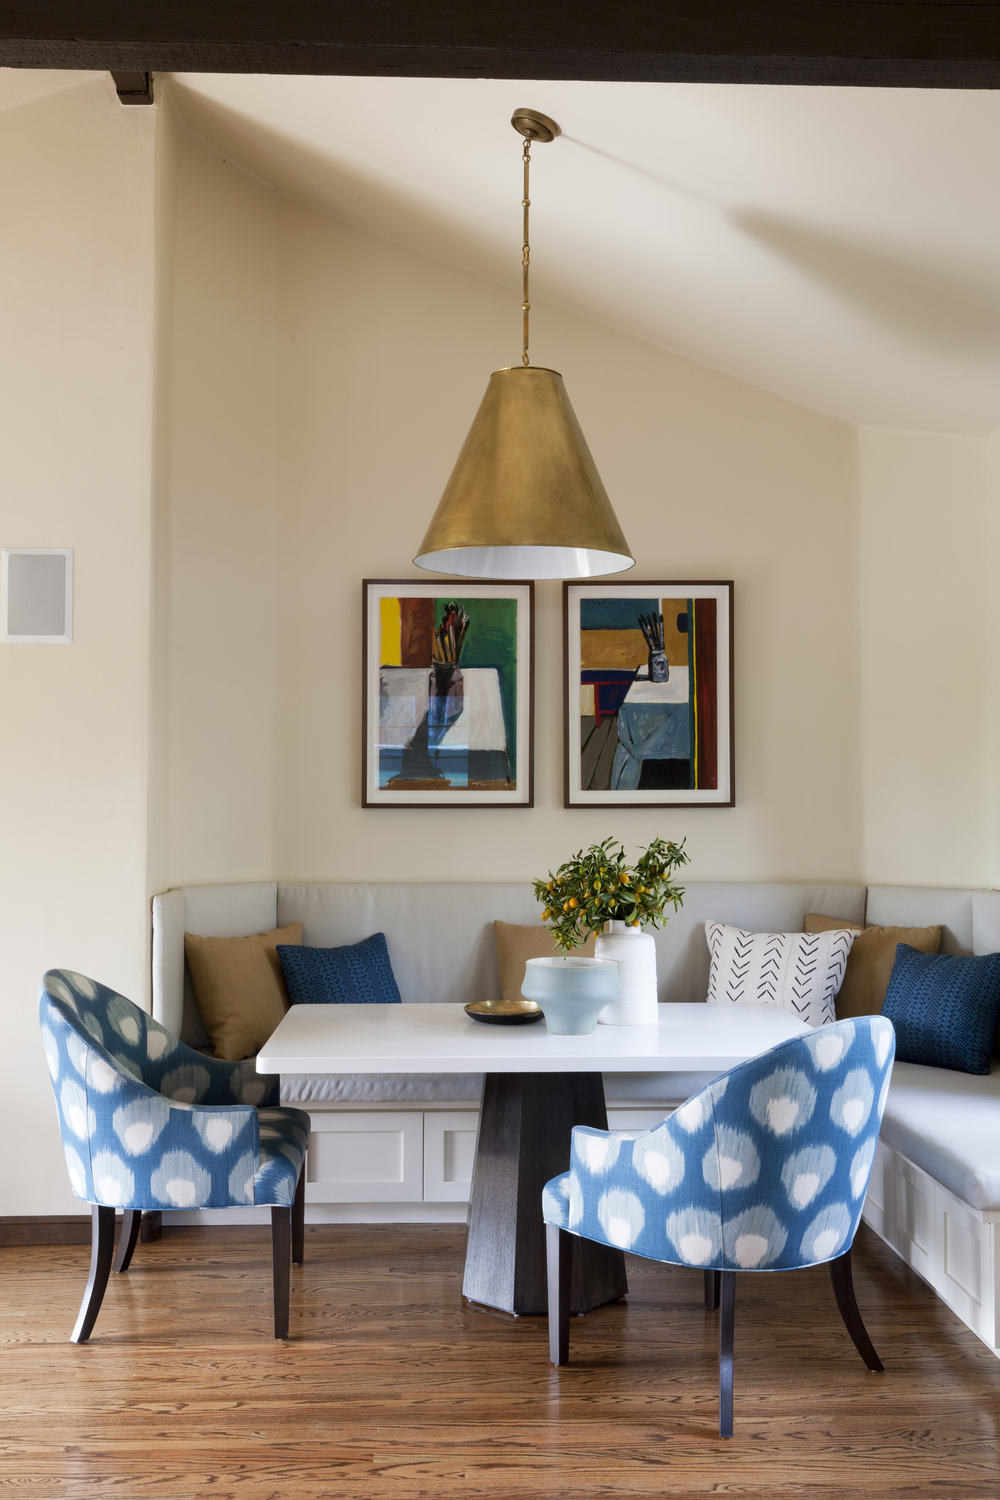 5 Breakfast Nook IMG_9846.jpg